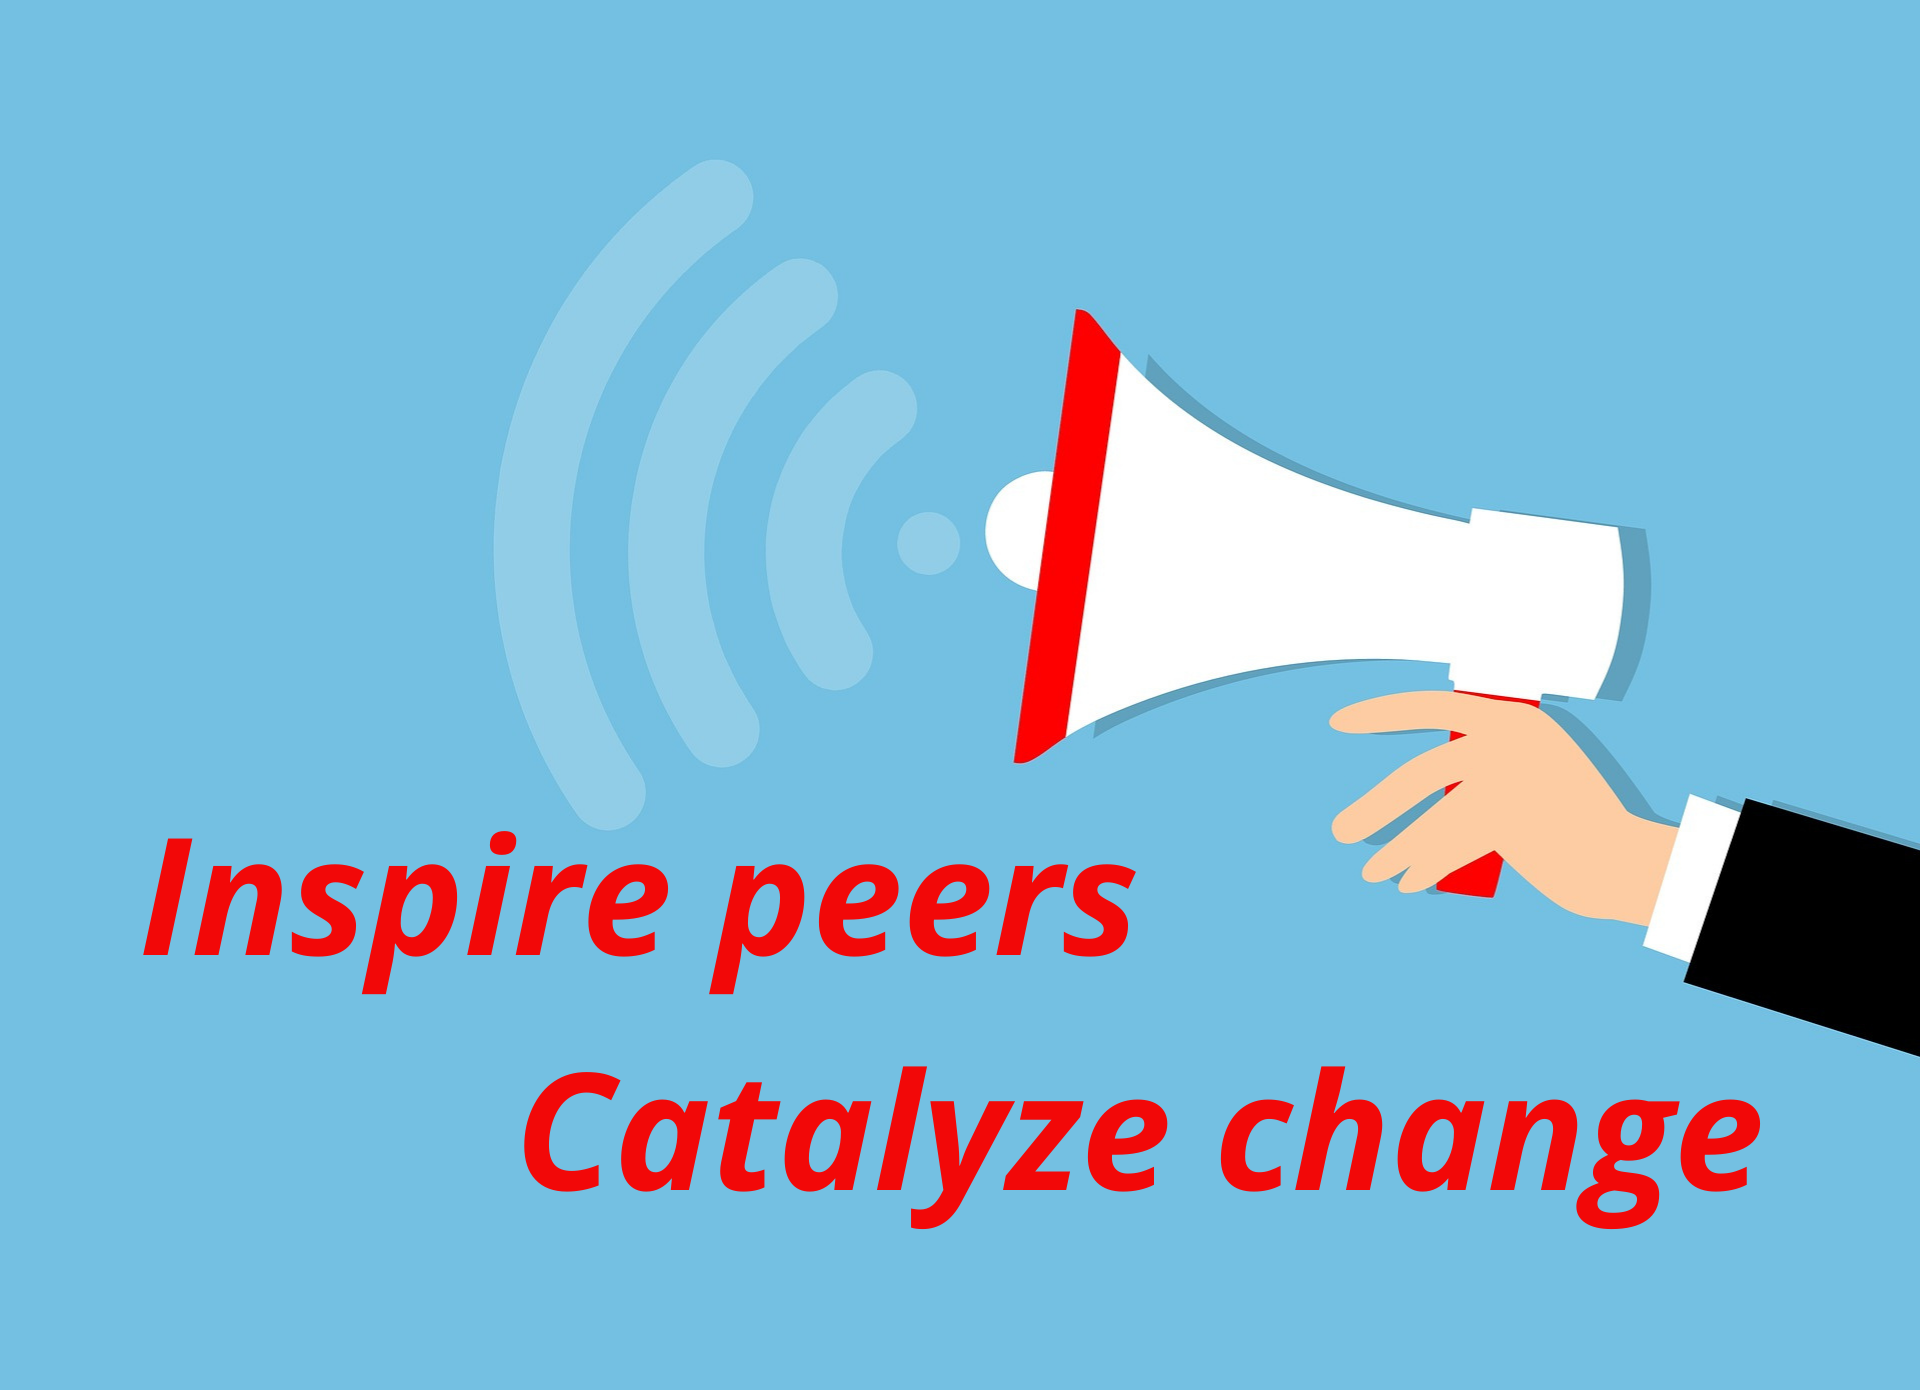 Inspire peers, catalyze change